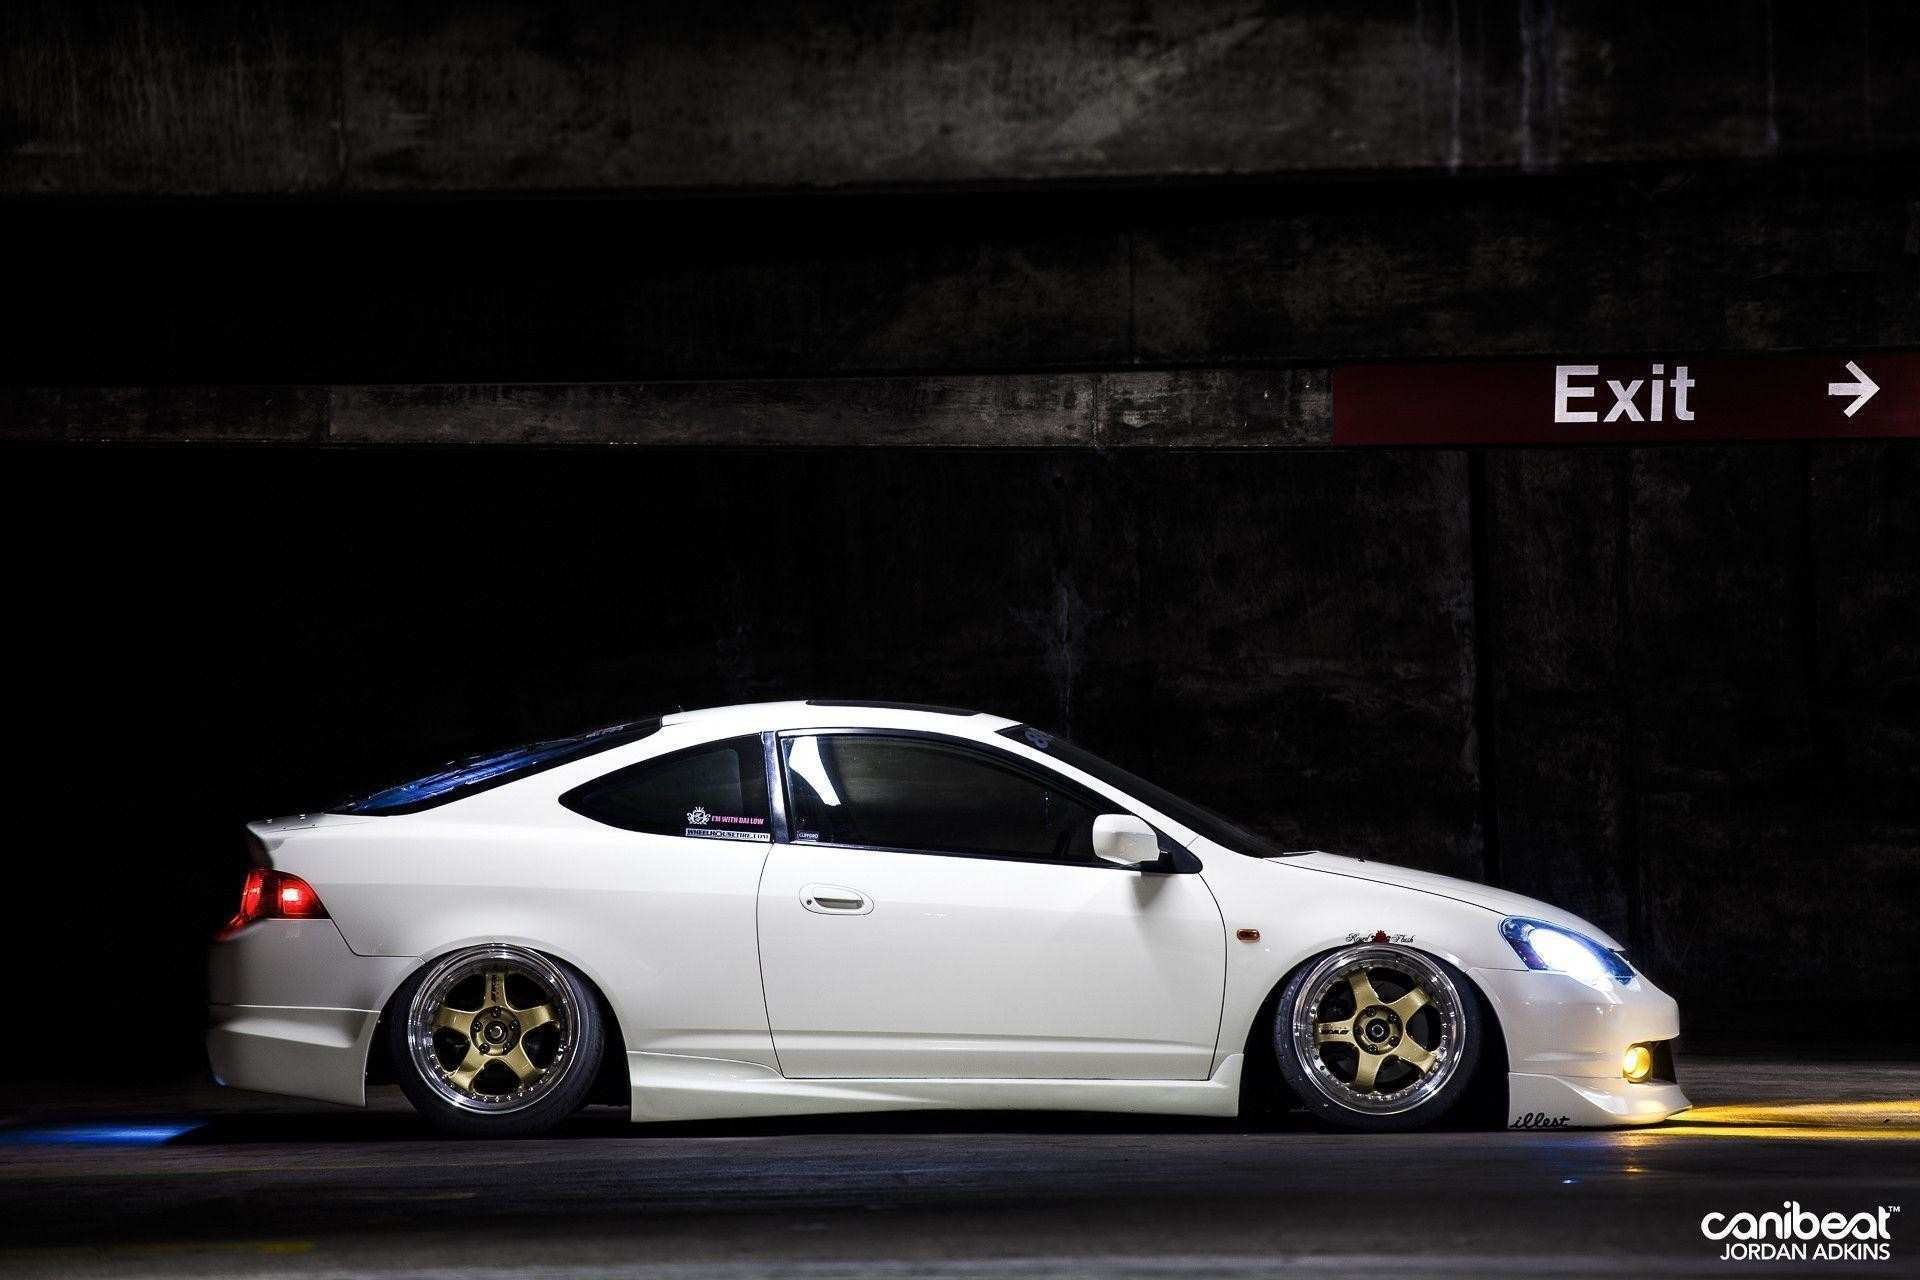 27 Concept of Acura Rsx Wallpaper Price and Review for Acura Rsx Wallpaper